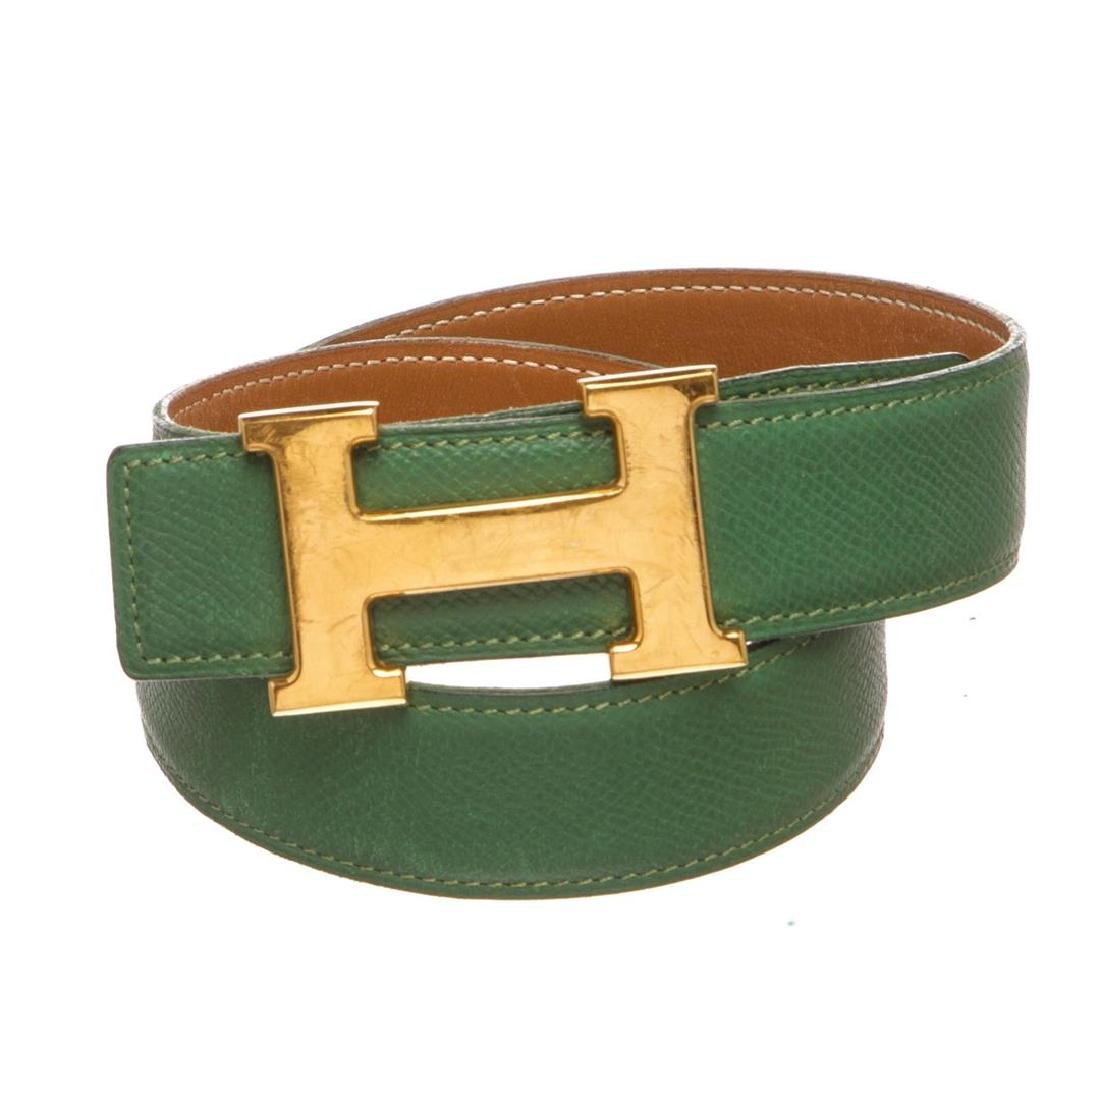 Hermes Green Leather Reversible Constance H Belt 60